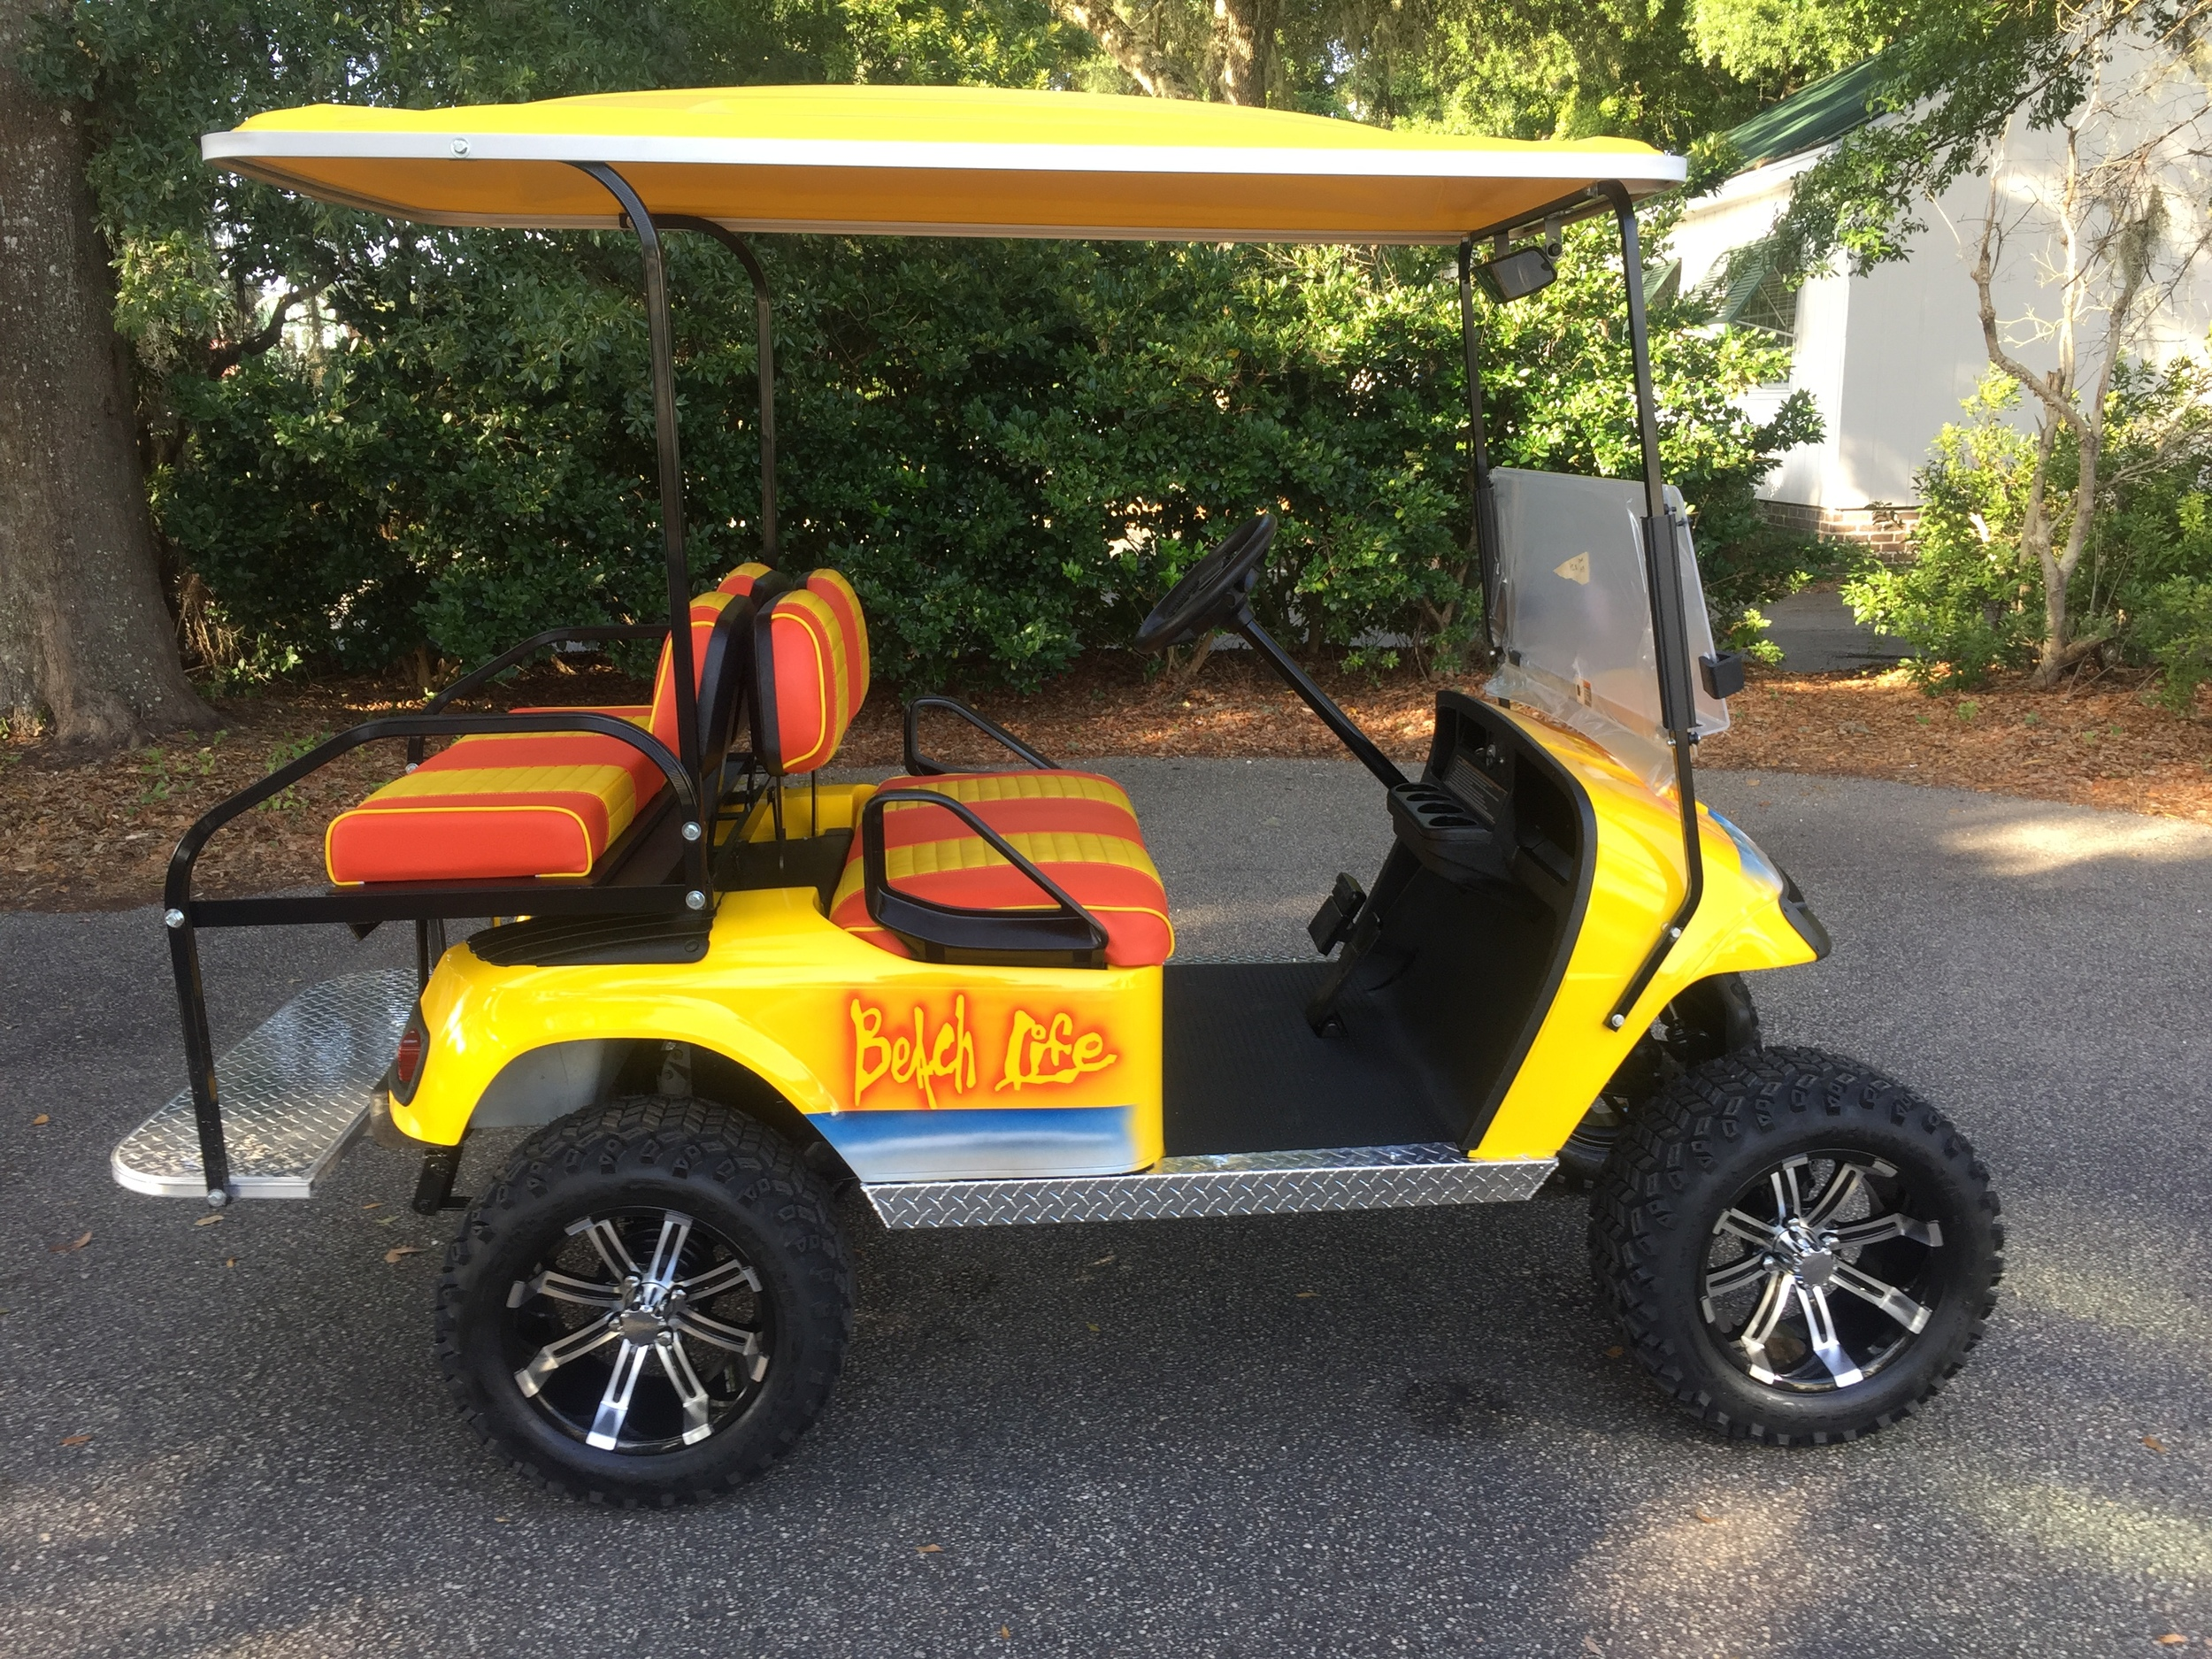 Yellow Beach Life EZGO Lifted Cart  Yellow/orange seats, yellow extended top, new 2018 (6-8vt) batteries, high speed code, LED lights, Backlash (23x10x14) tires, mirror, rear cup holders, flip windshield, and state of charge meter